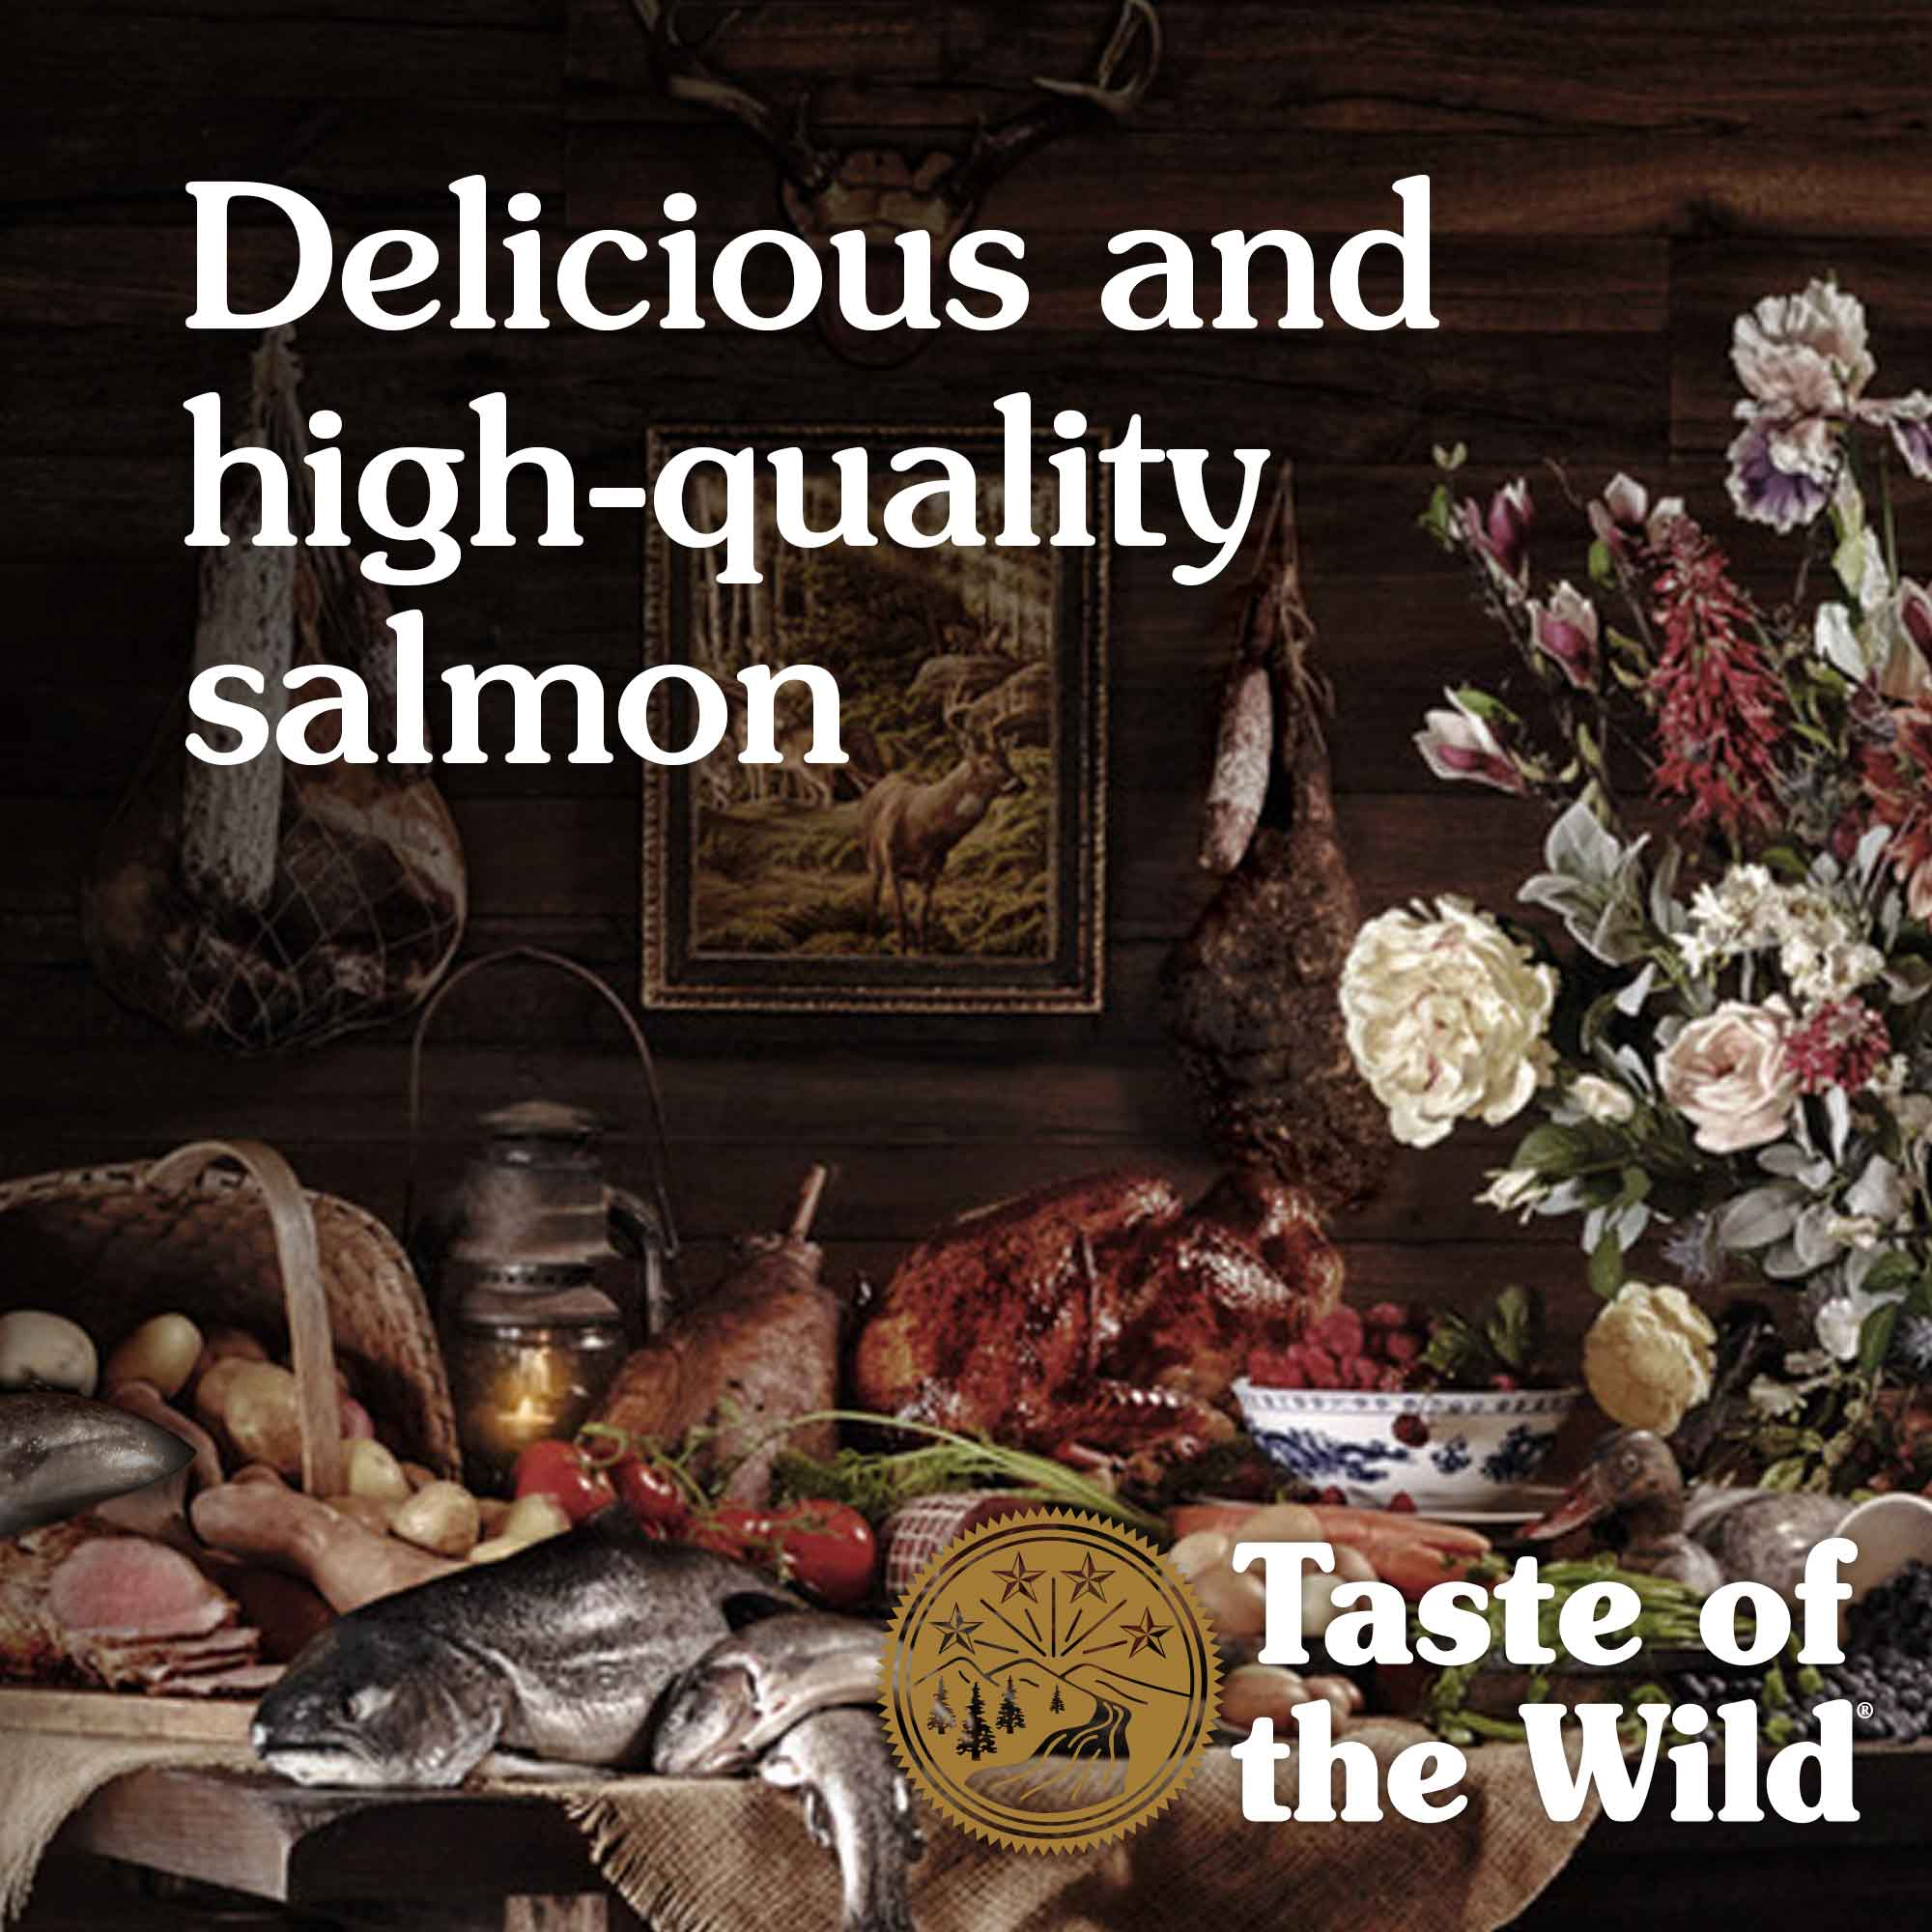 Delicious and high-quality salmon